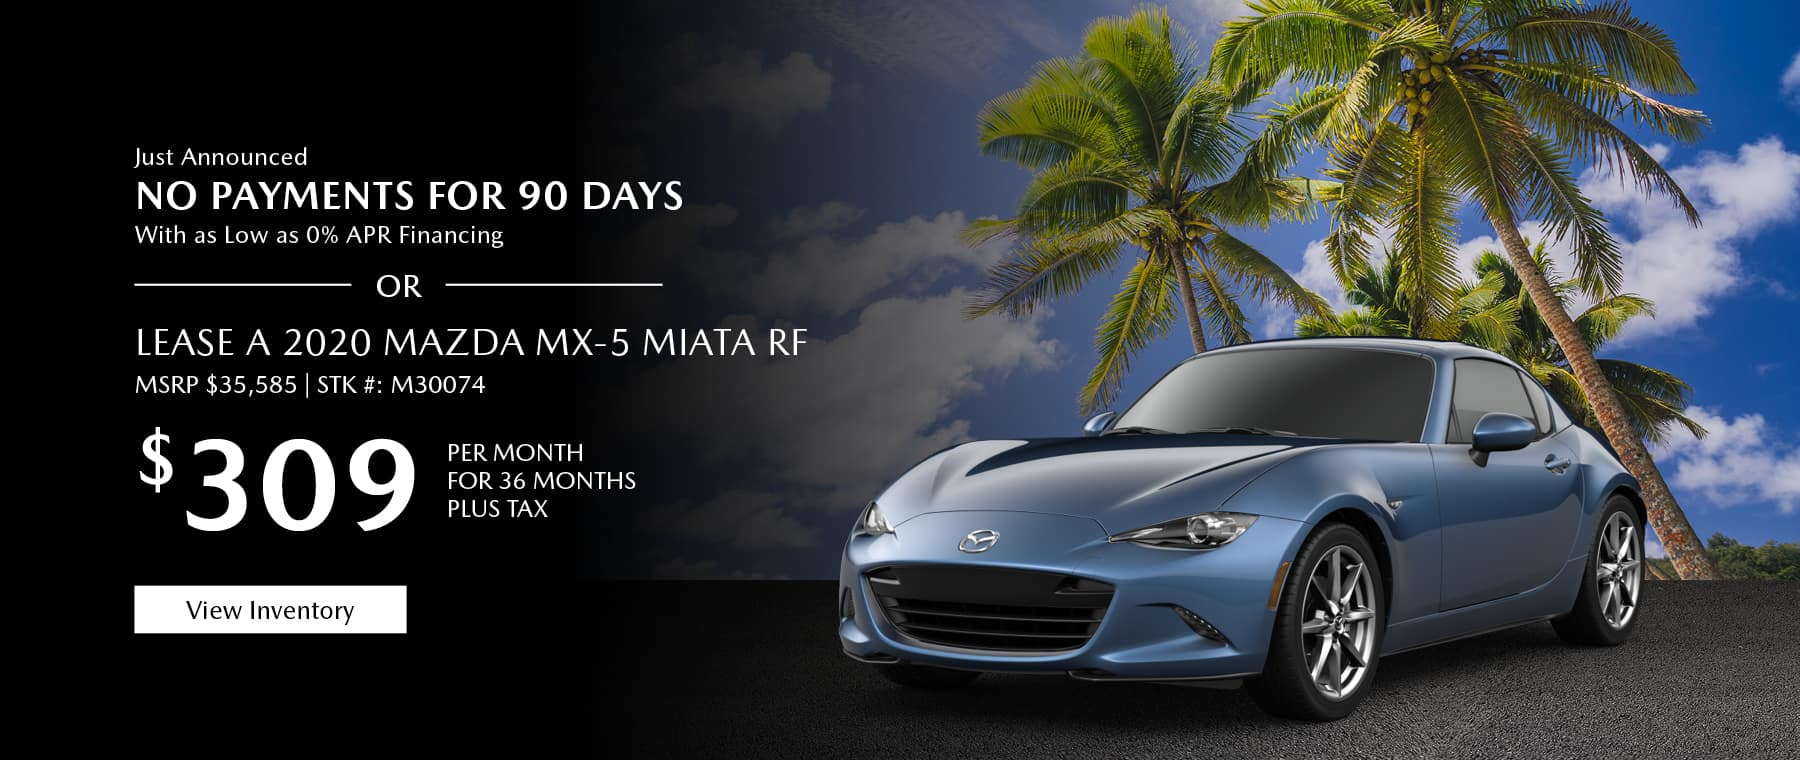 Just Announced, No payments for 90 days with as low as %0 APR financing, or lease the 2020 Mazda MX-5 Miata RF for $309 per month, plus tax. View inventory.